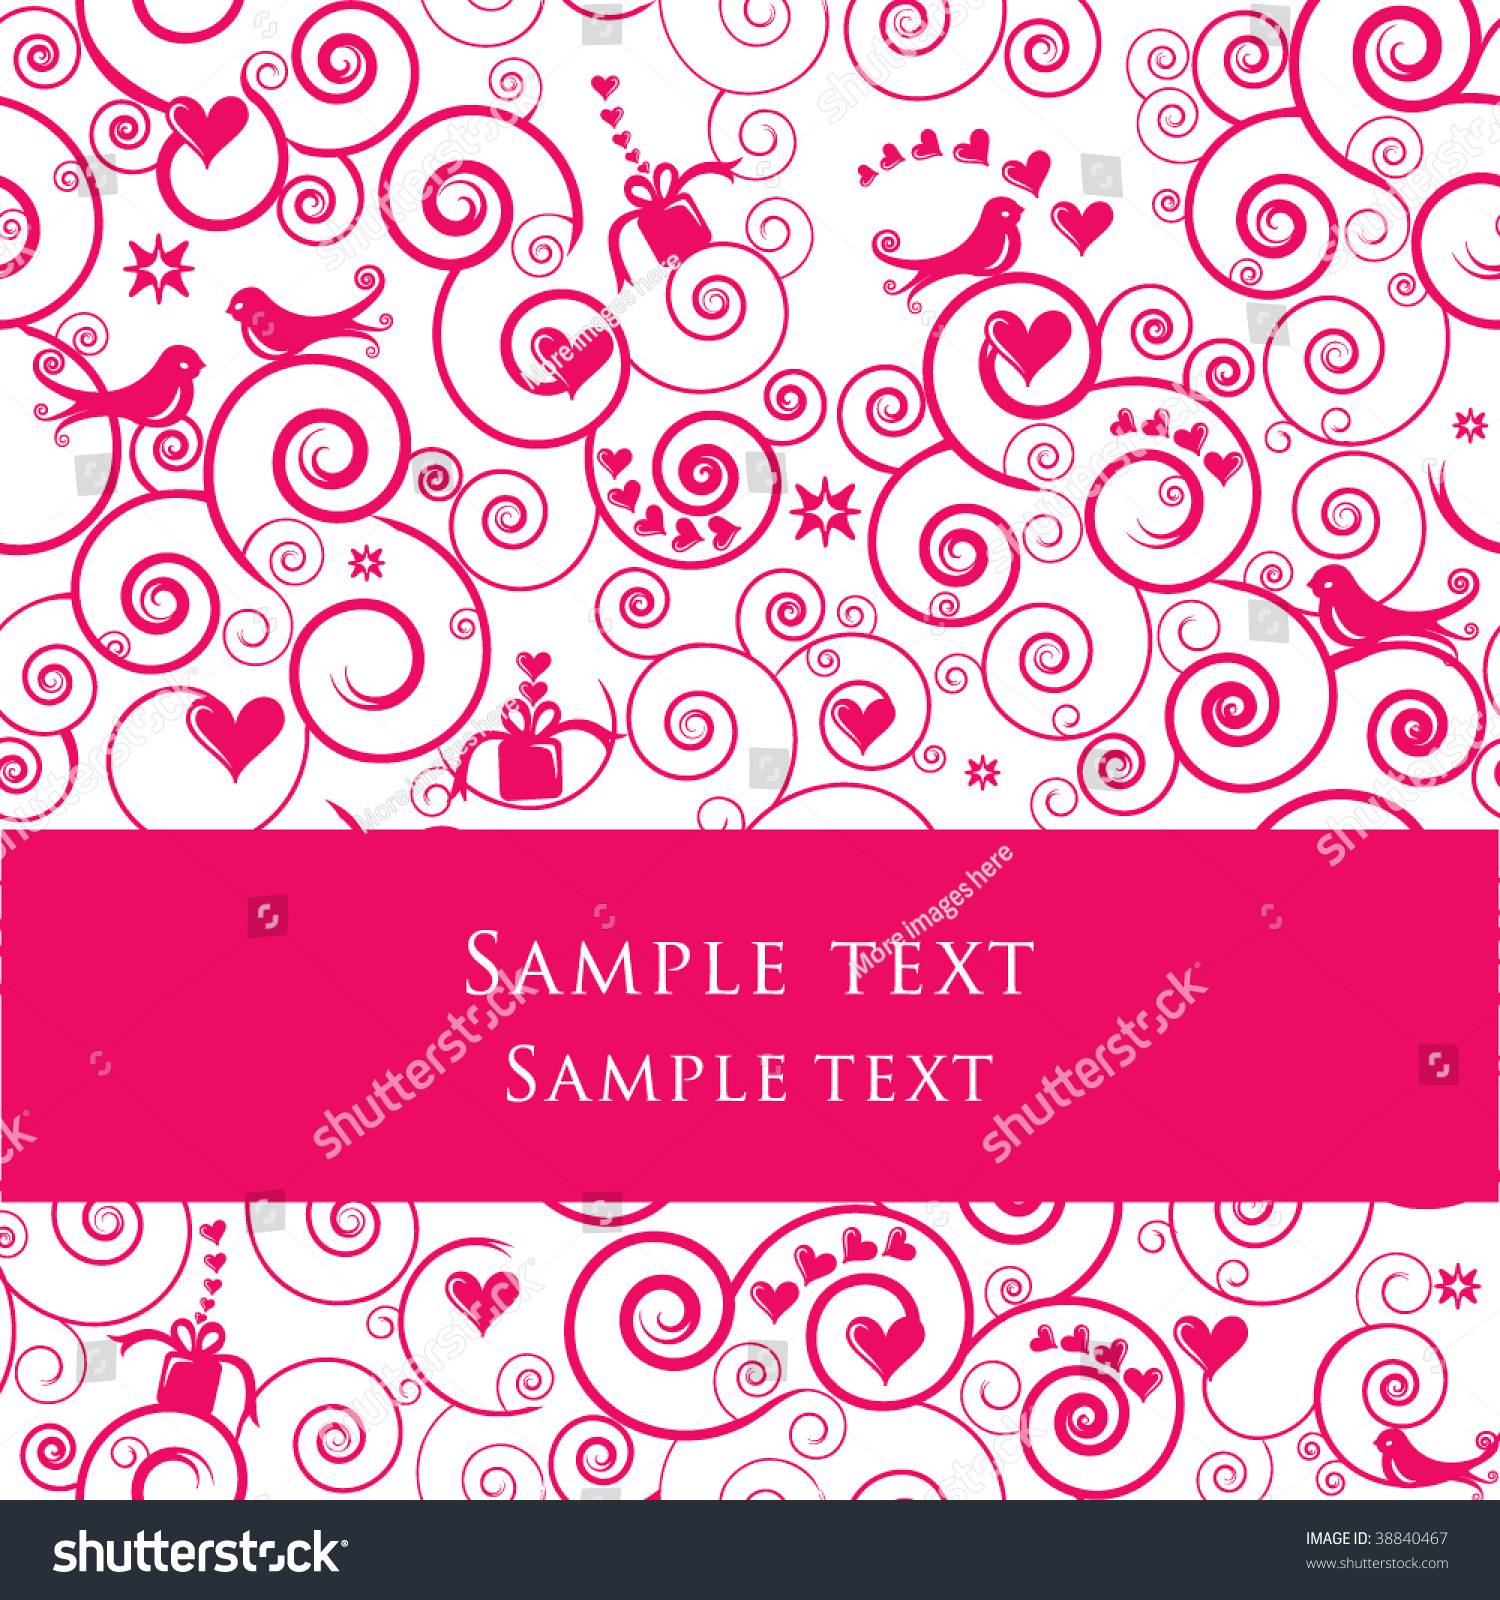 Invitations For Parties Gallery - Party Invitations Ideas